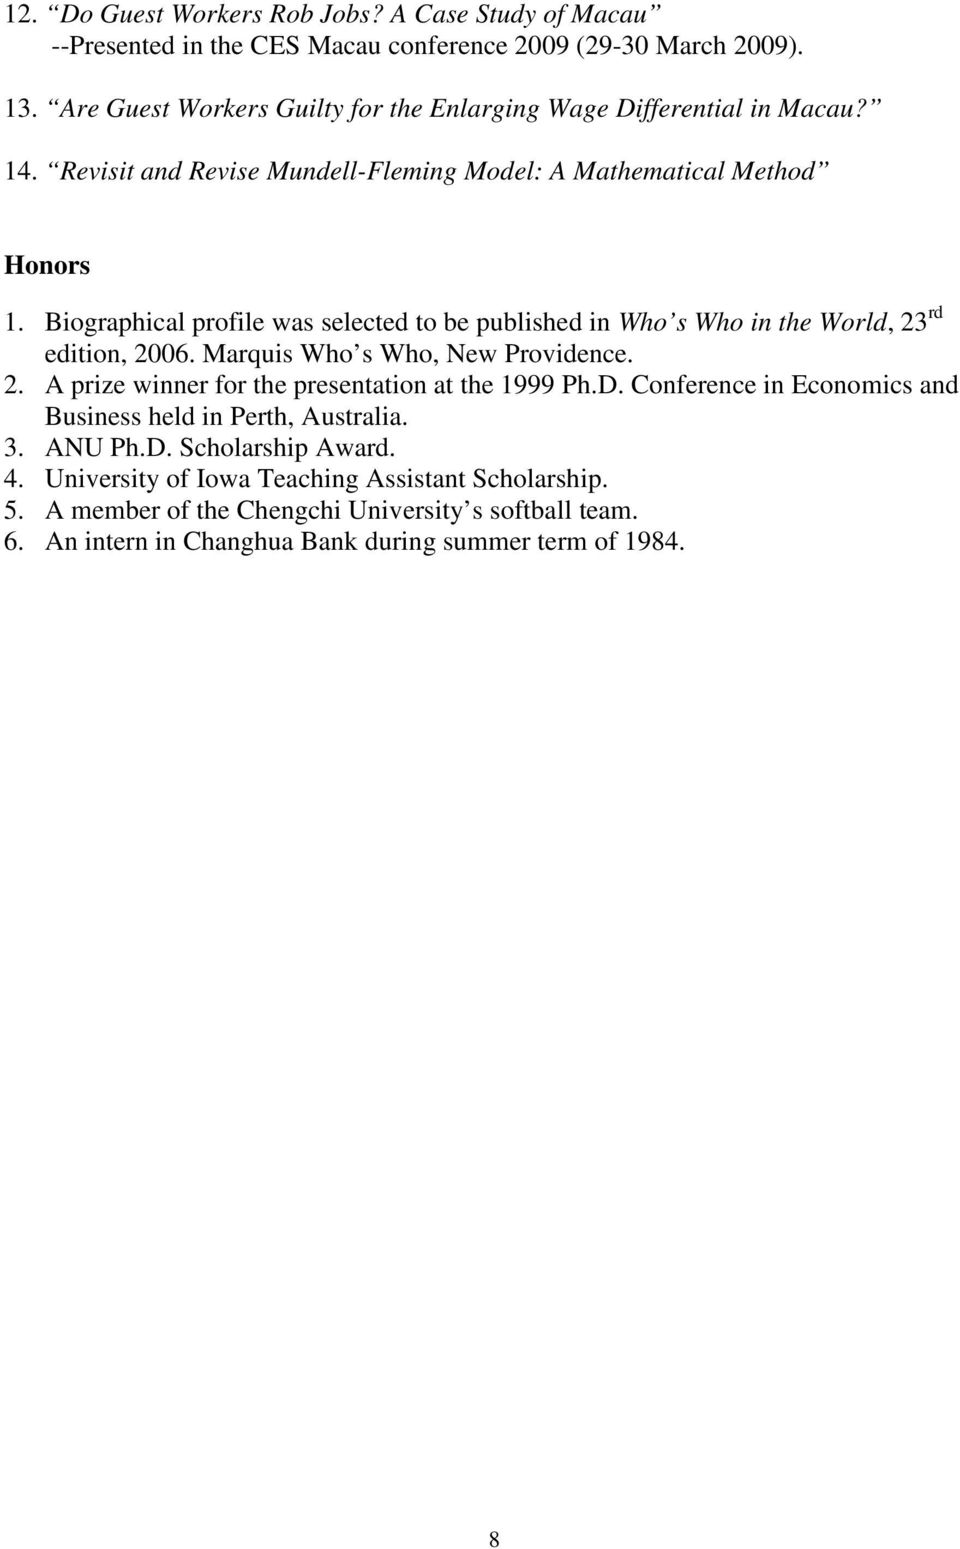 Biographical profile was selected to be published in Who s Who in the World, 23 rd edition, 2006. Marquis Who s Who, New Providence. 2. A prize winner for the presentation at the 1999 Ph.